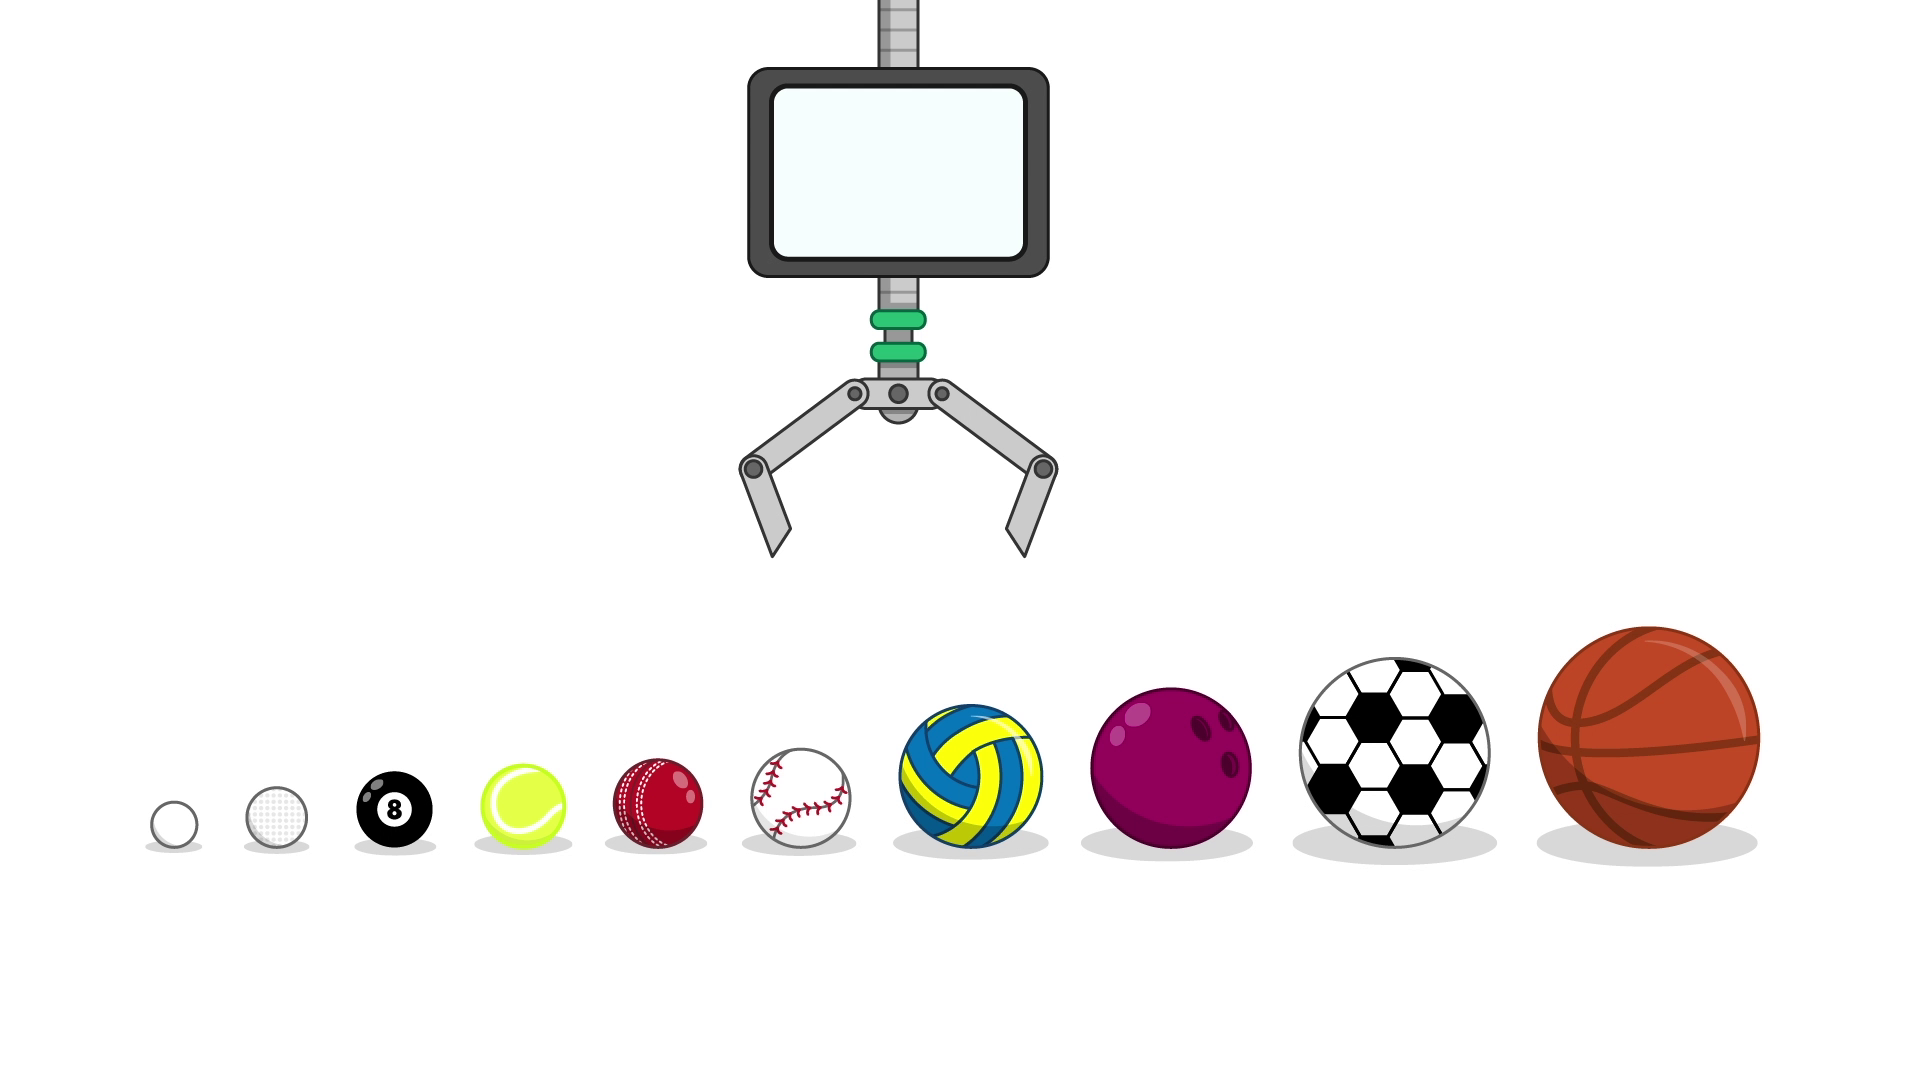 A shelf of the 10 balls in the sorted order above, with a robotic claw above them.